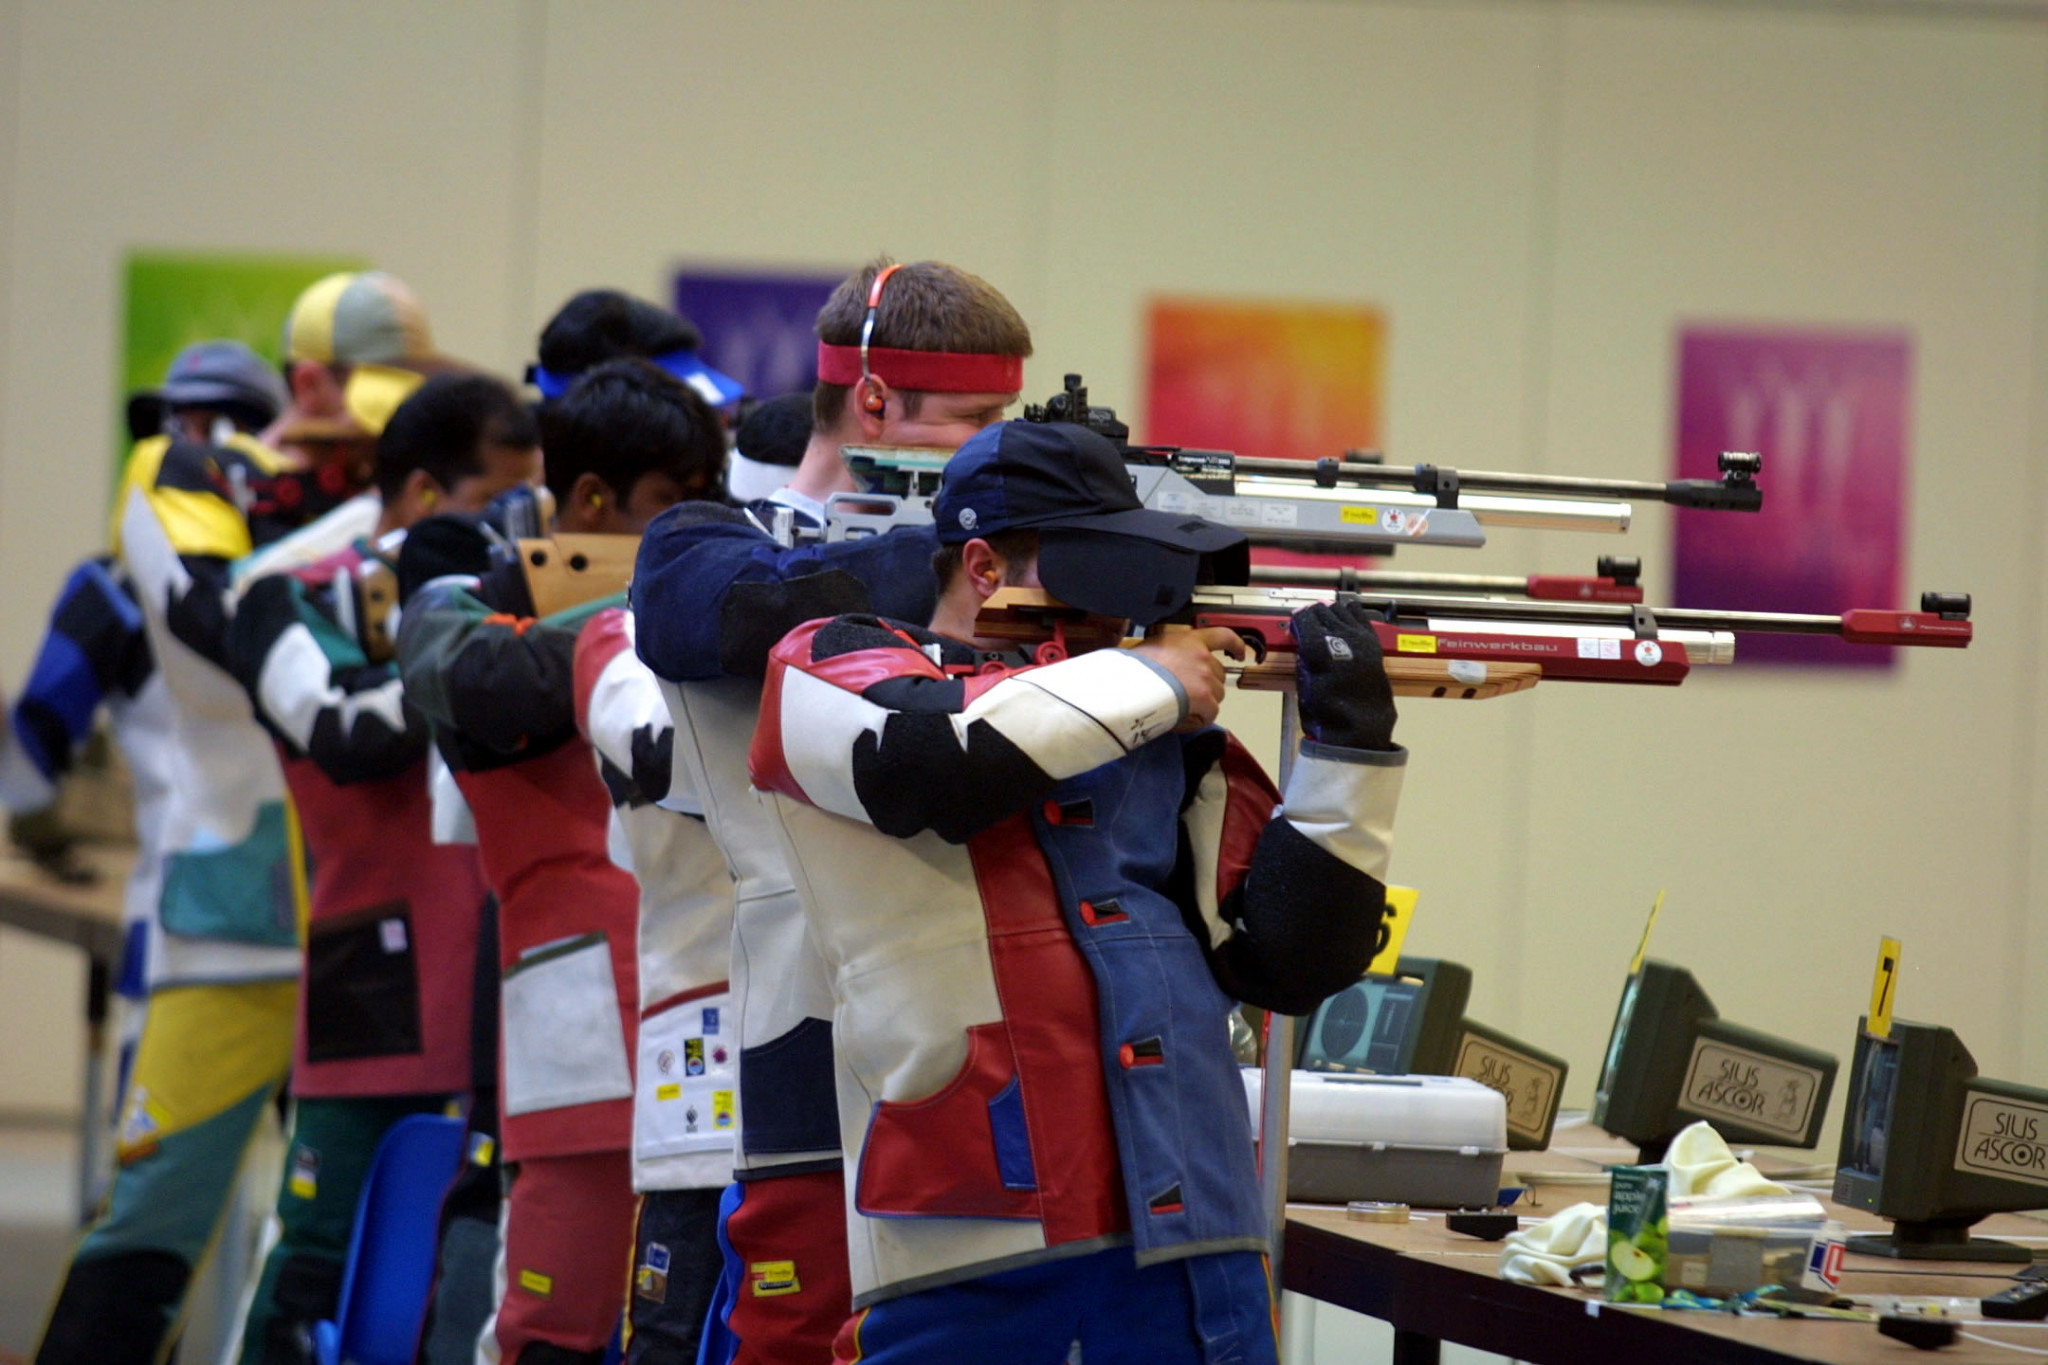 Bisley, which staged shooting the last time England hosted the Commonwealth Games, in Manchester in 2002, could again be pressed into action for Birmingham 2022 under an ISSF proposal ©Getty Images